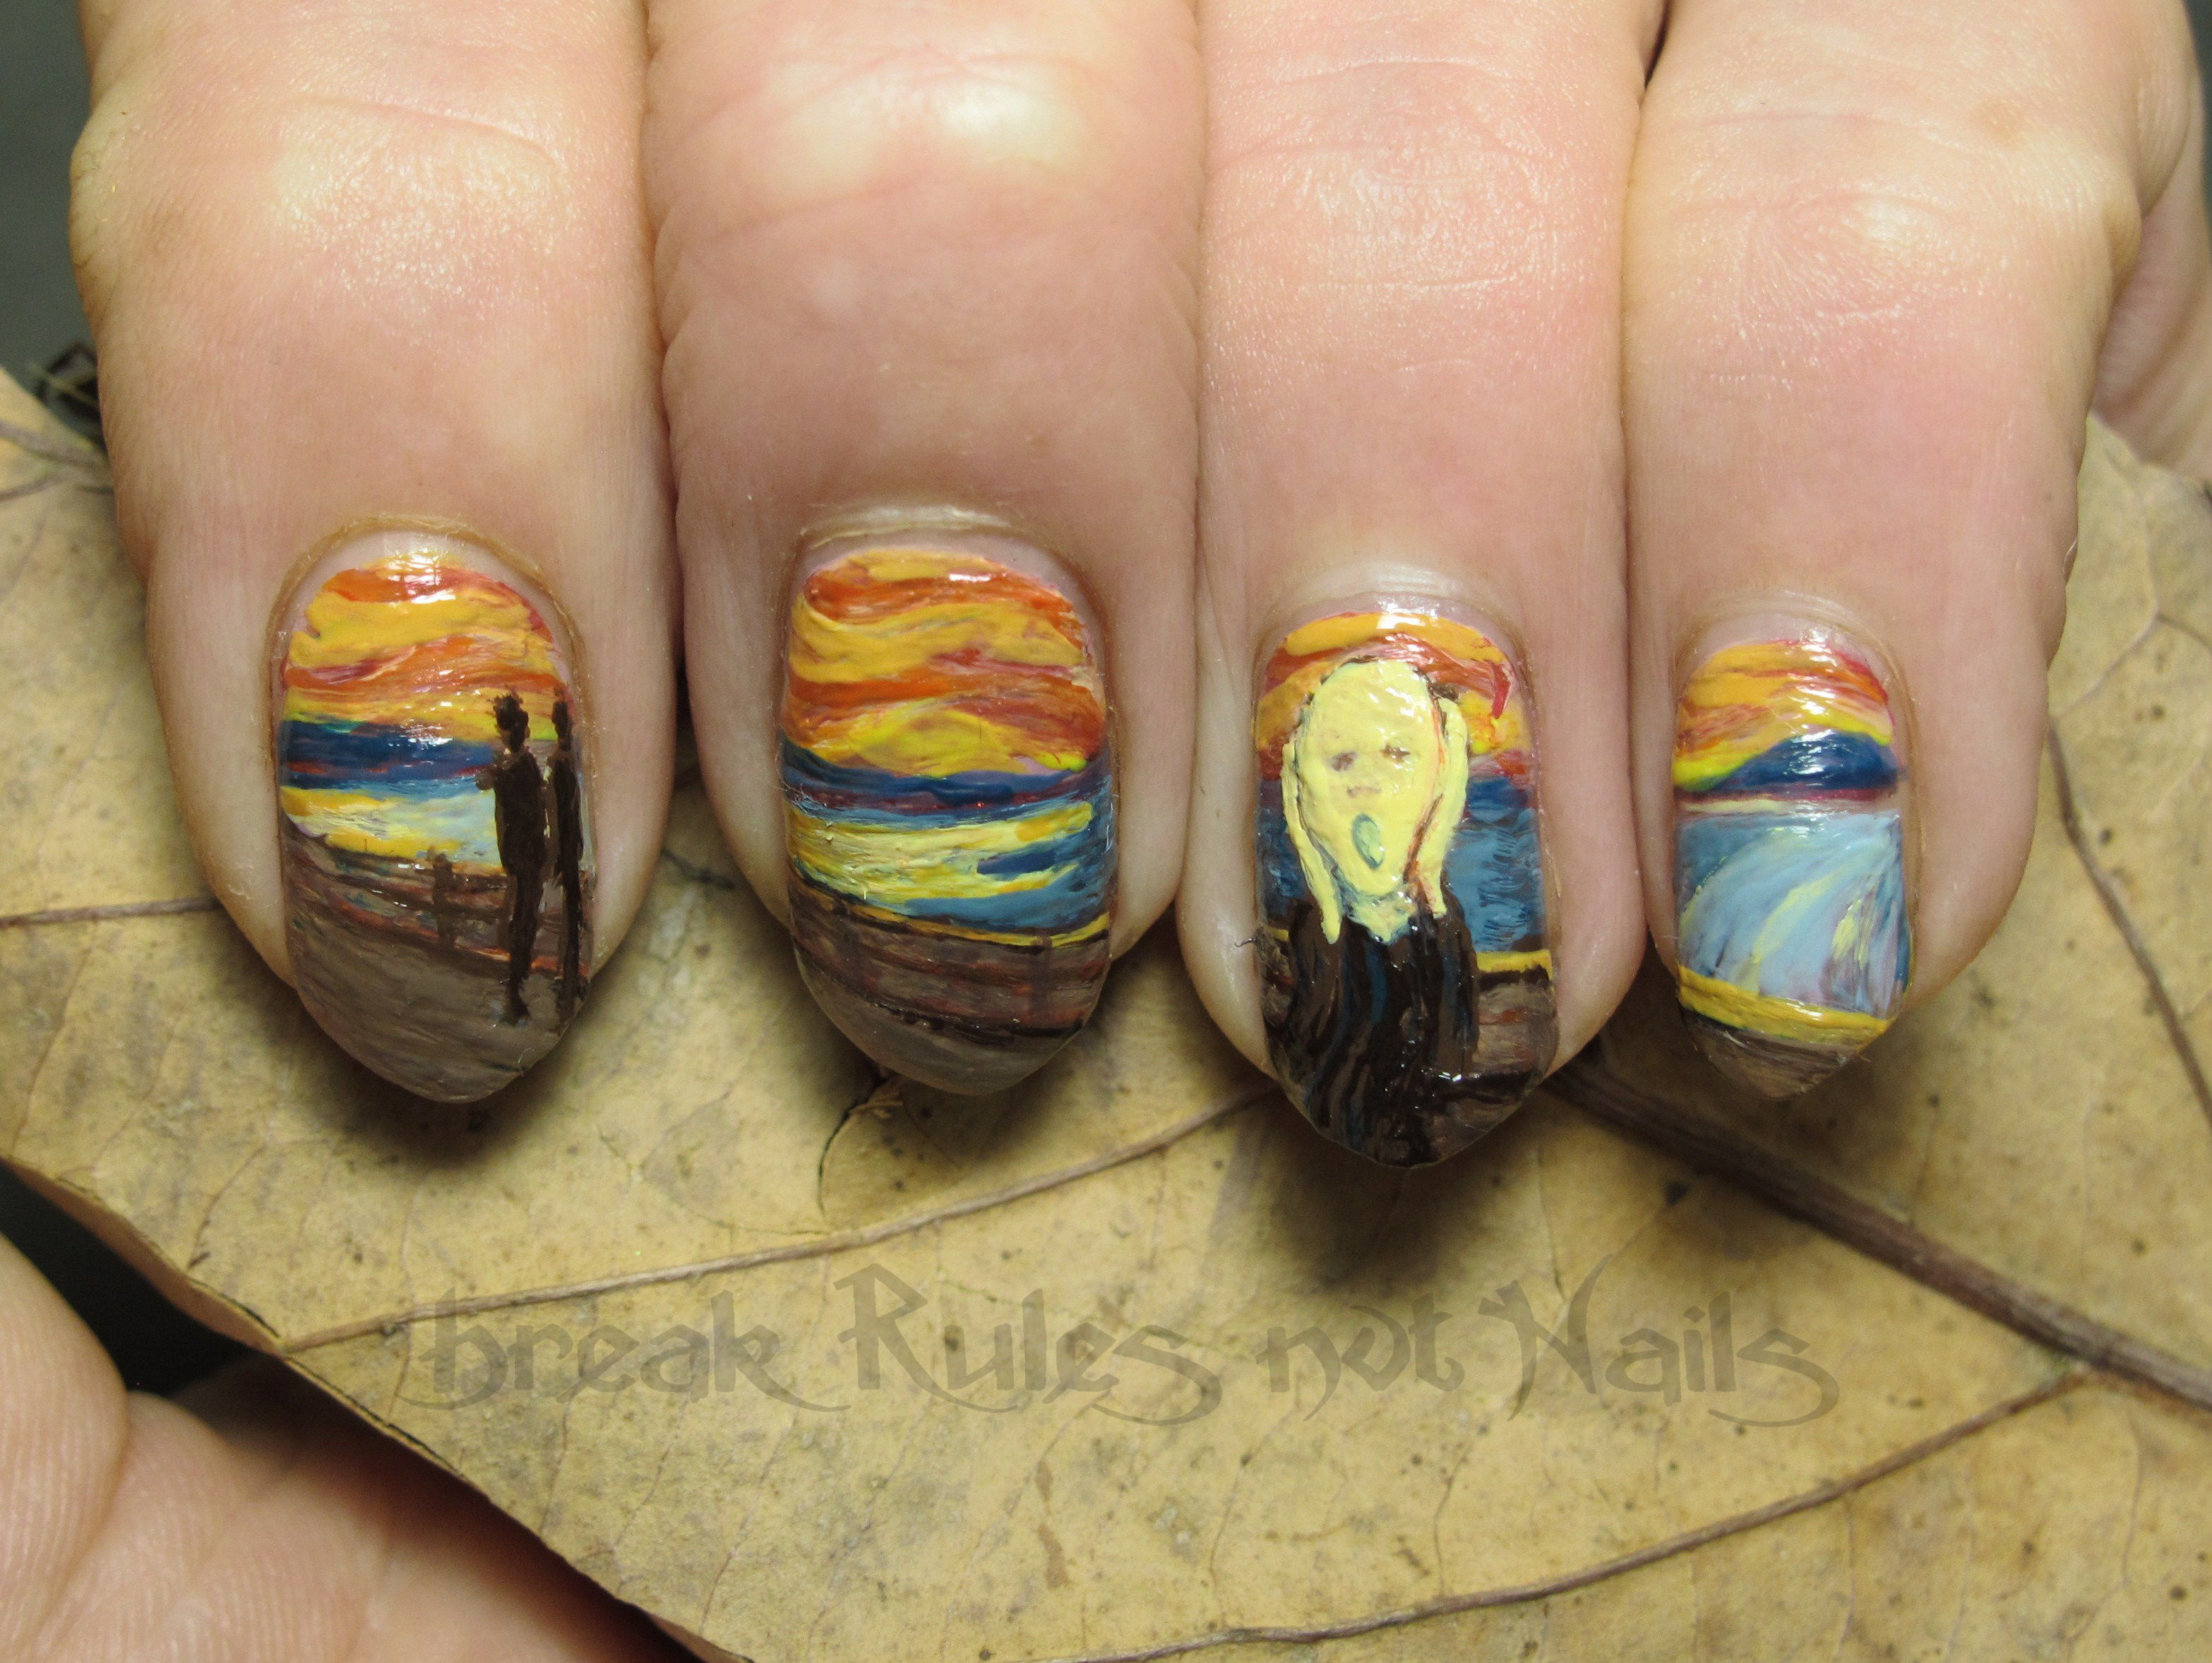 Munch nail art | Break rules, not nails